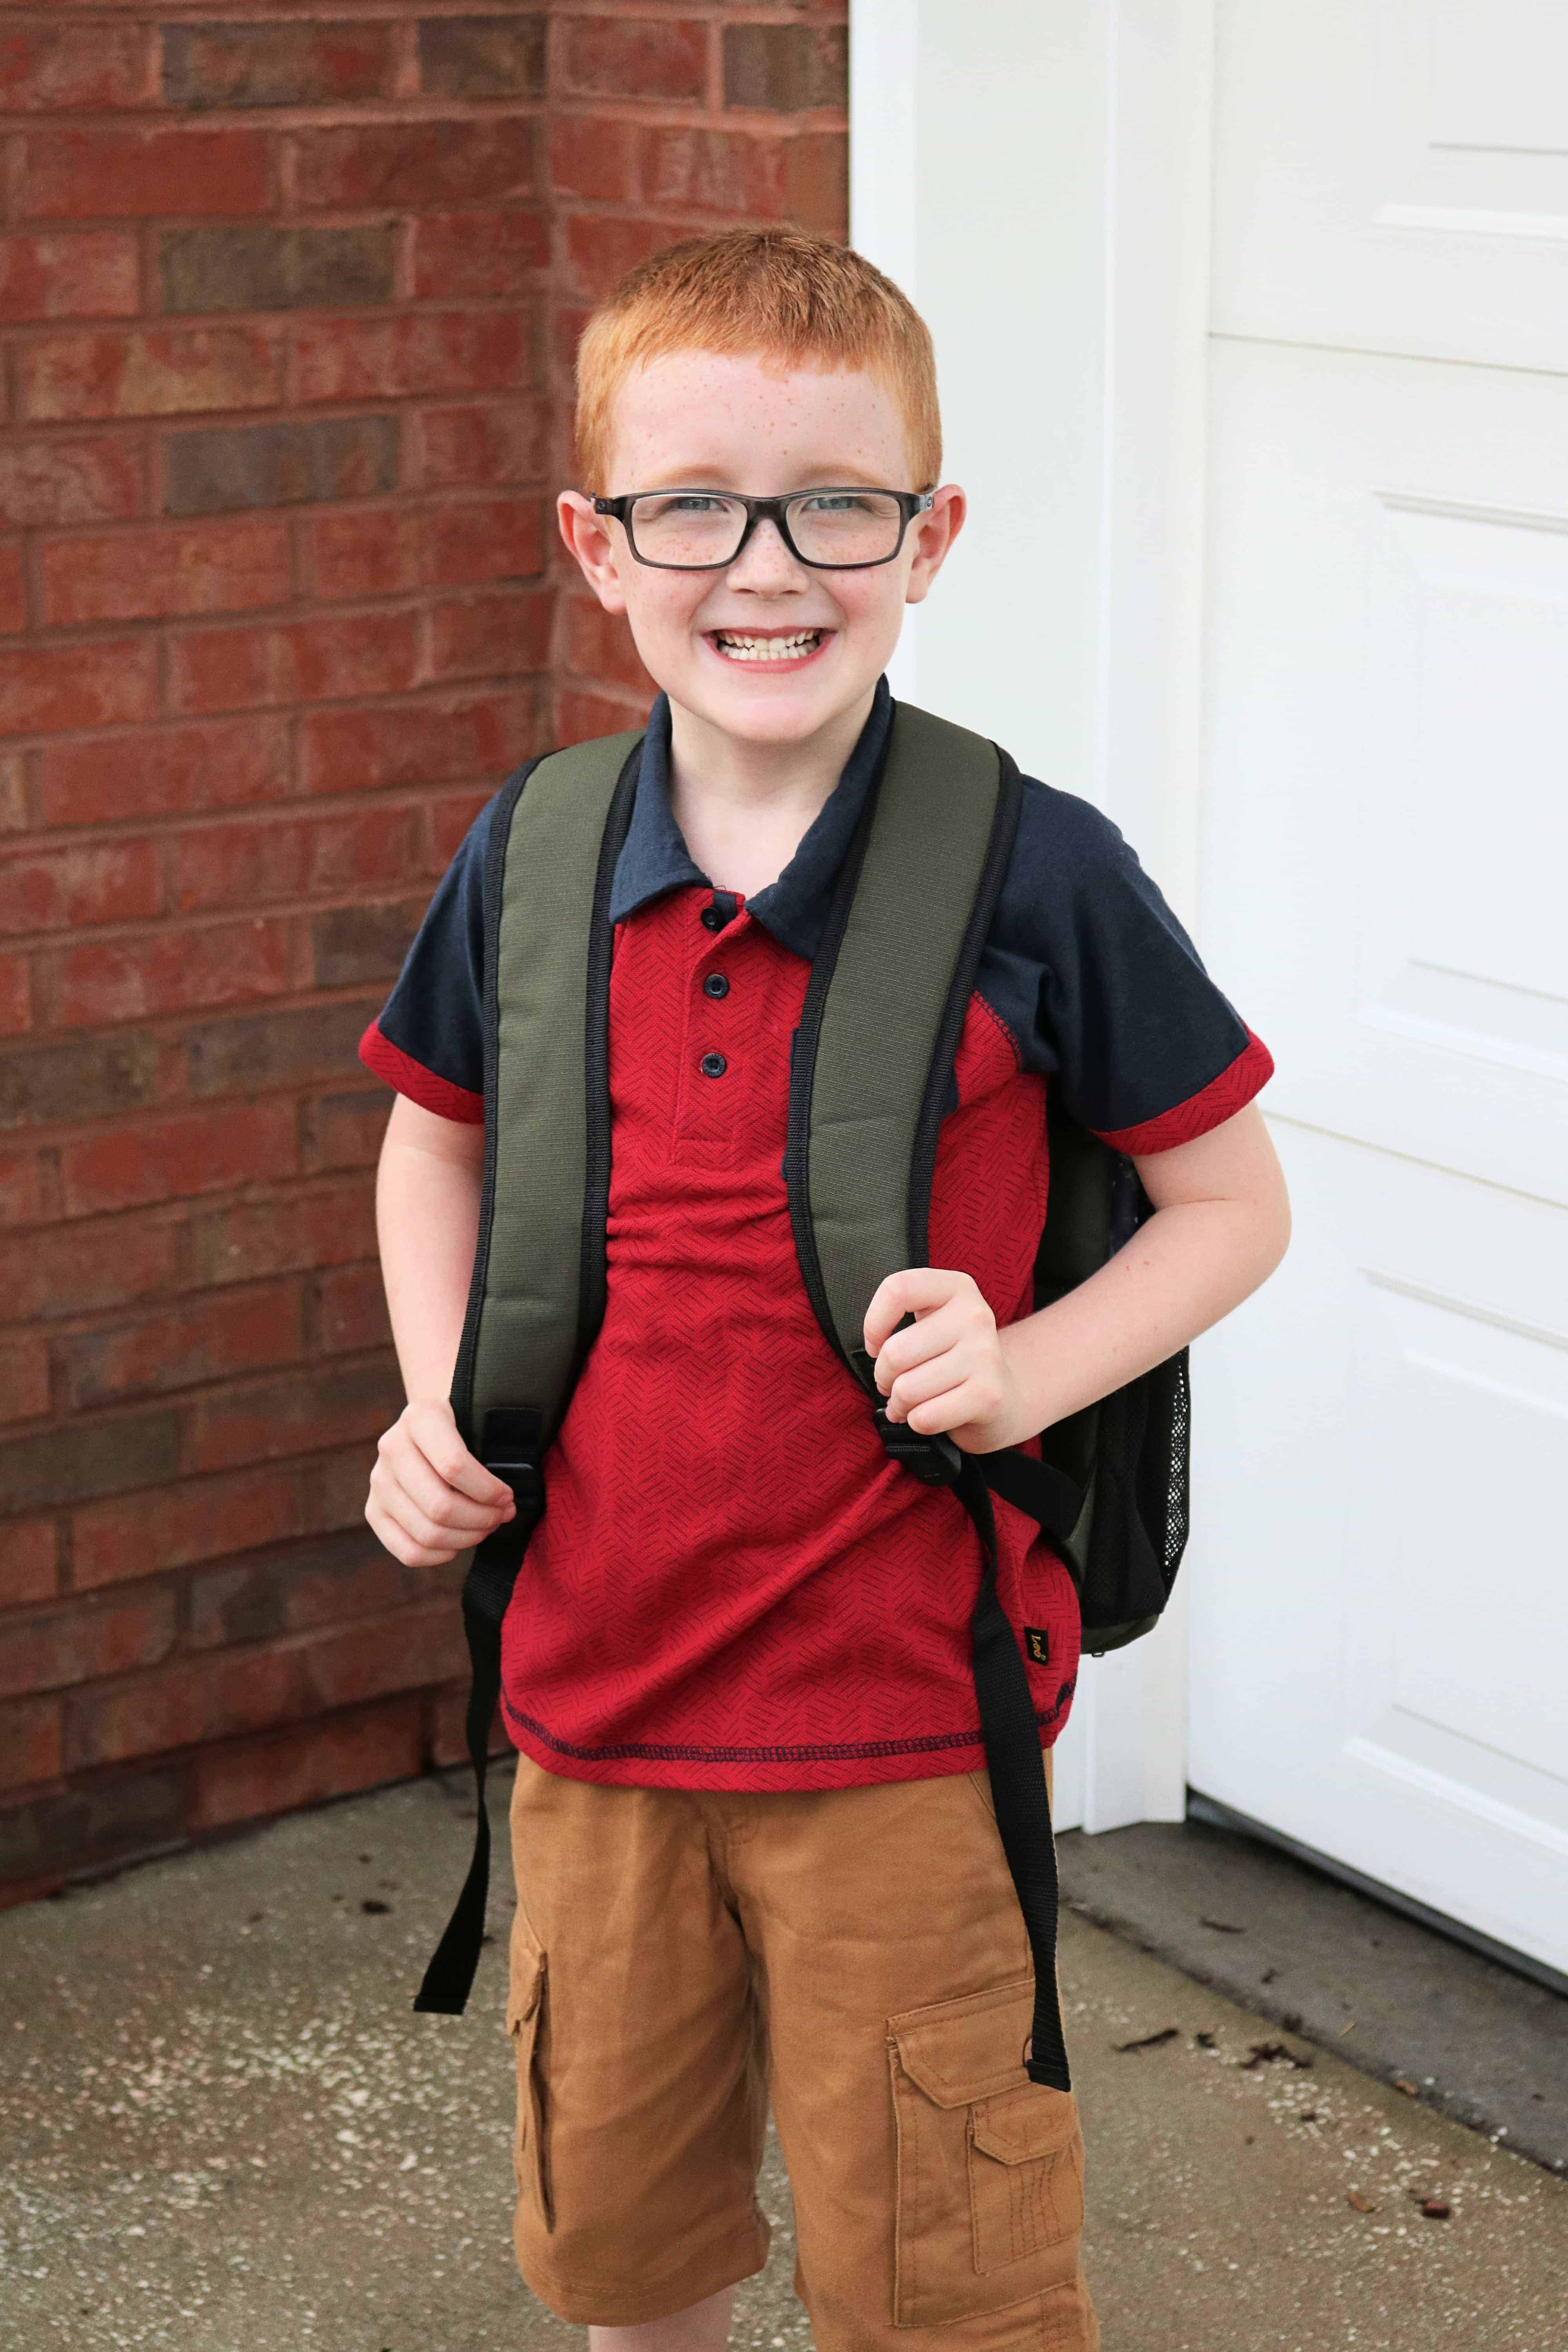 Looking for ways to save on back to school clothes shopping?Then check out my post on how I stay under budget and find everything my kids need for back to school by shopping at Bealls Outlet. Plus check out the cute first day of school outfits and backpacks my kids will be rocking this school year! #ad #BeallsOutlet #backtoschool #budgeting #shopping